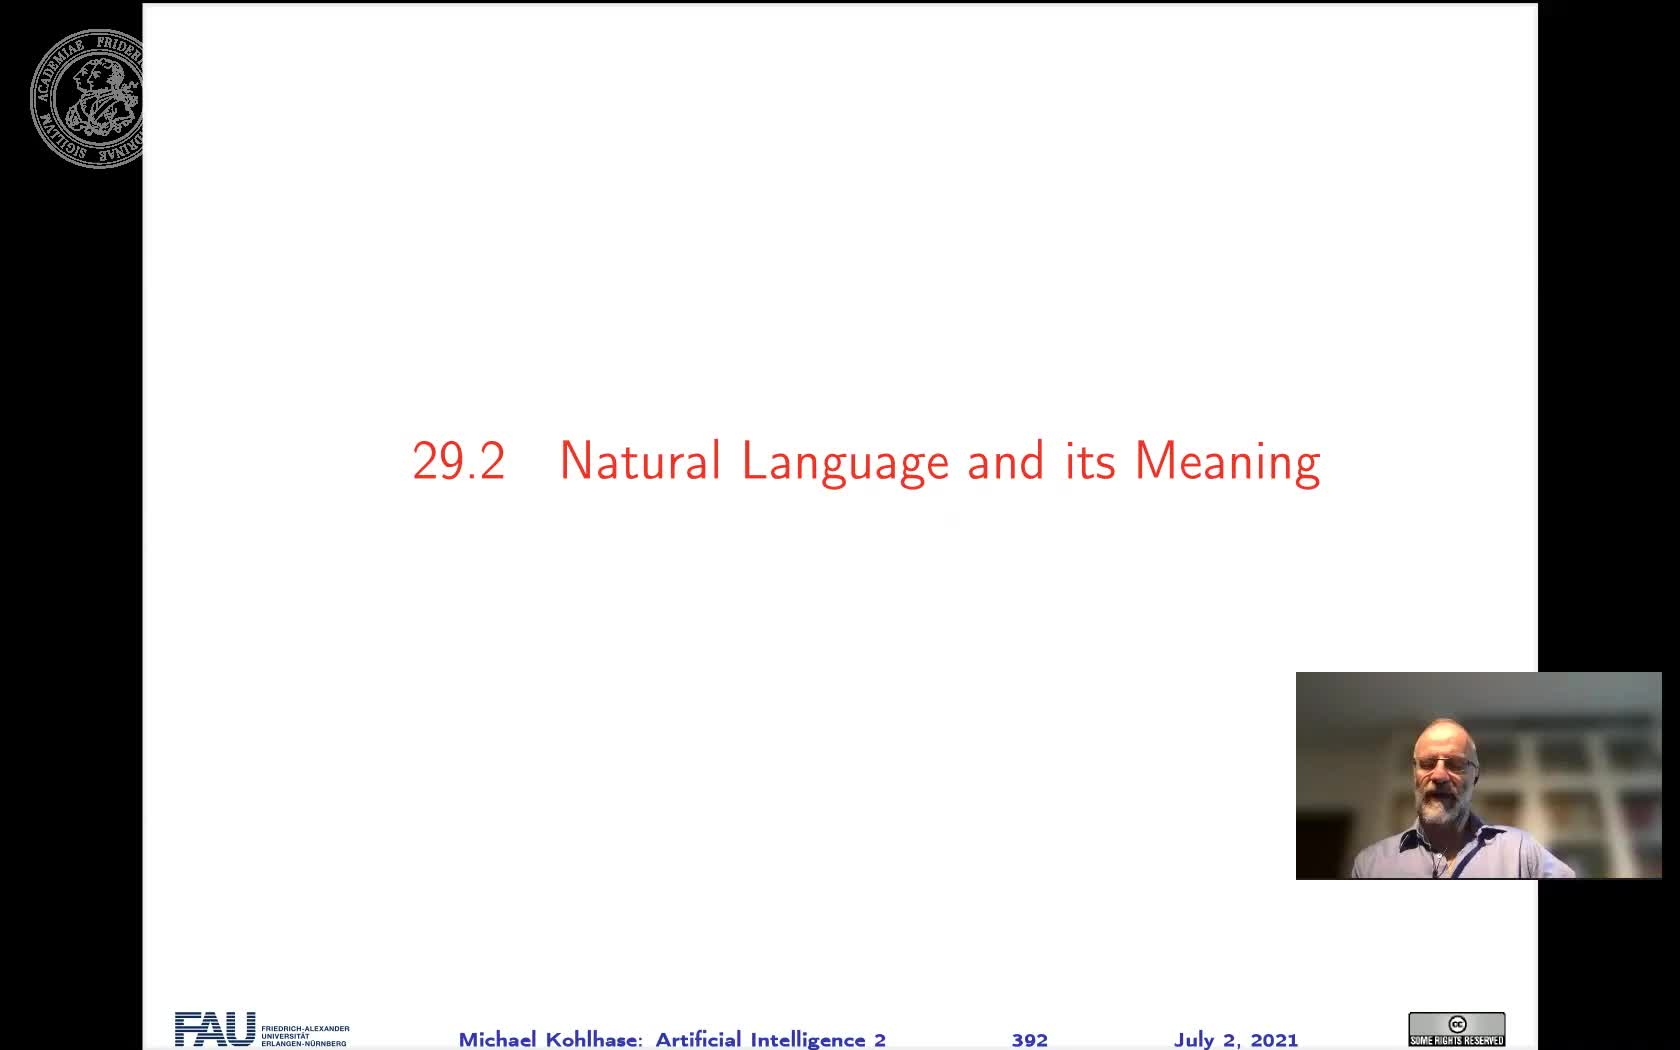 29.2 Natural Language and its Meaning preview image